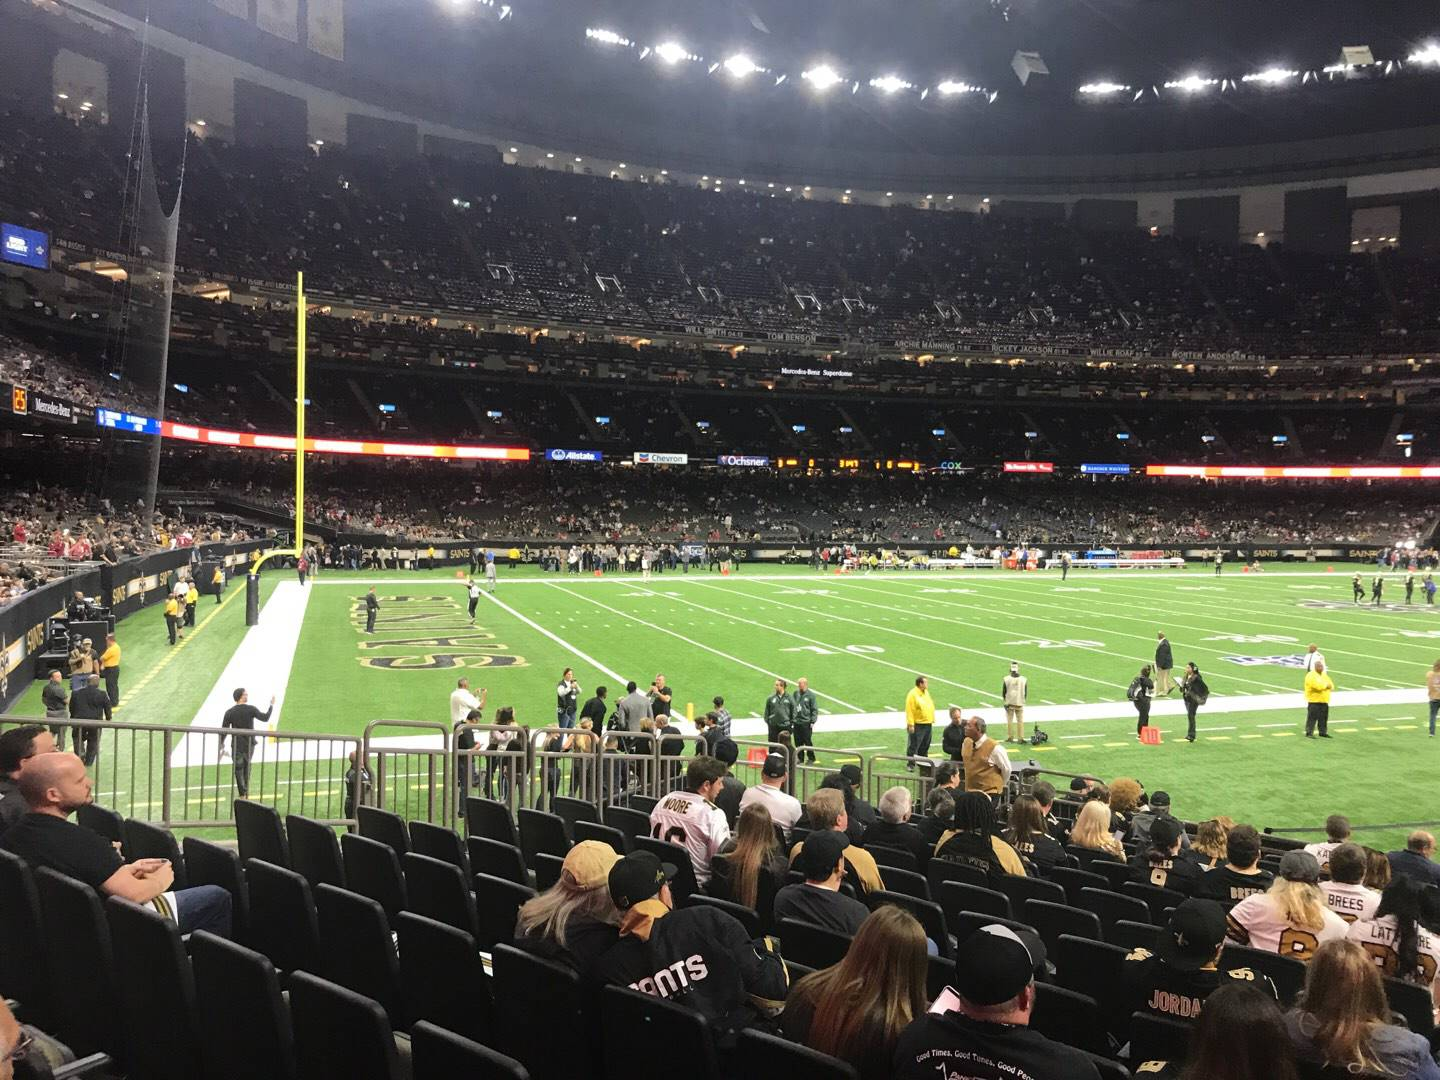 Mercedes-Benz Superdome Section 149 Row 16 Seat 8